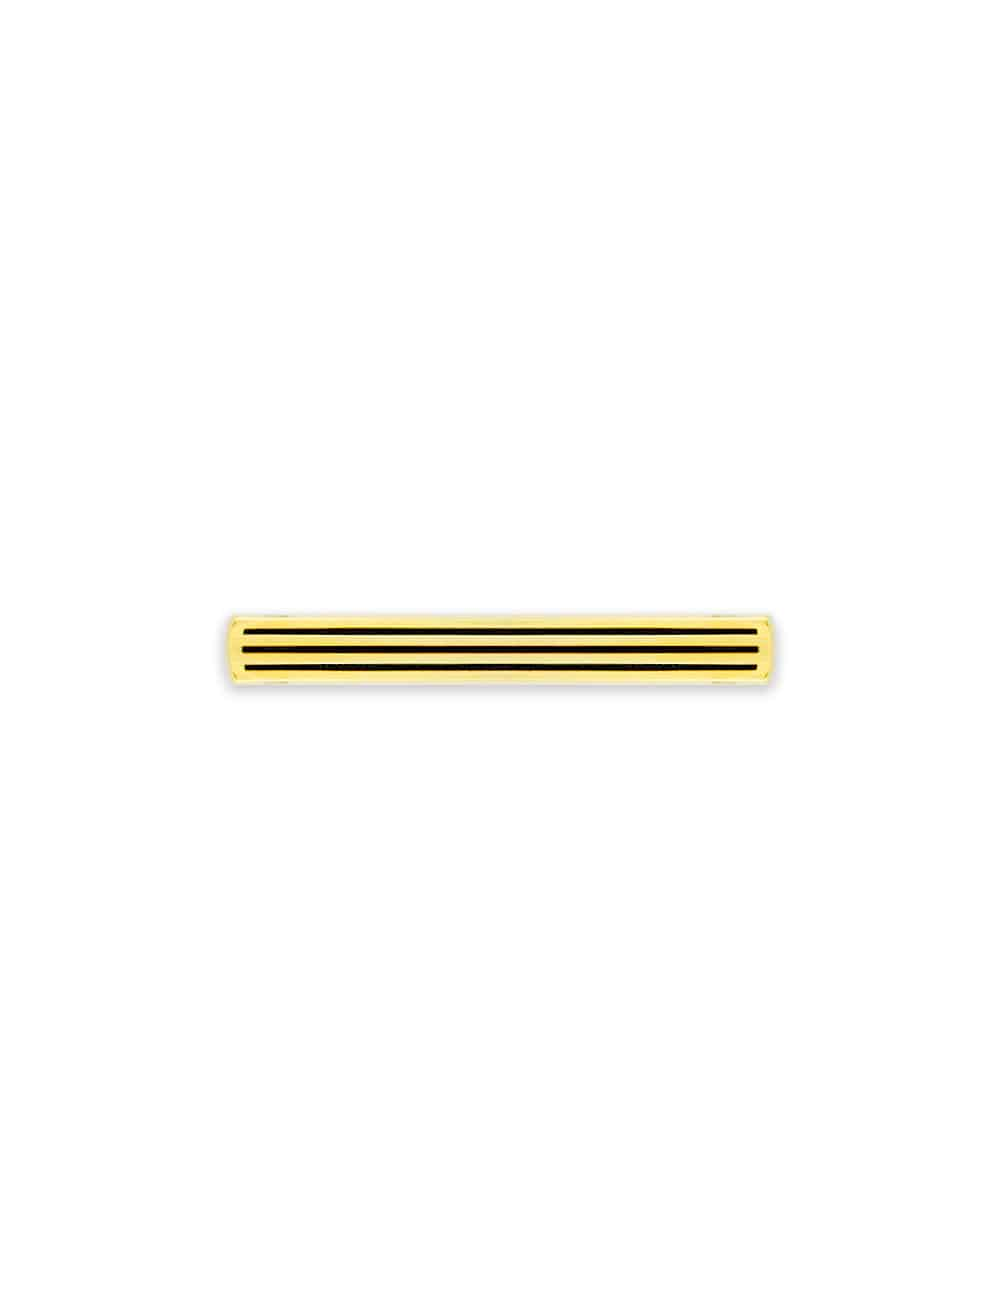 Gold with 3 Stripes Black Enamel Tie Clip T111FE-013